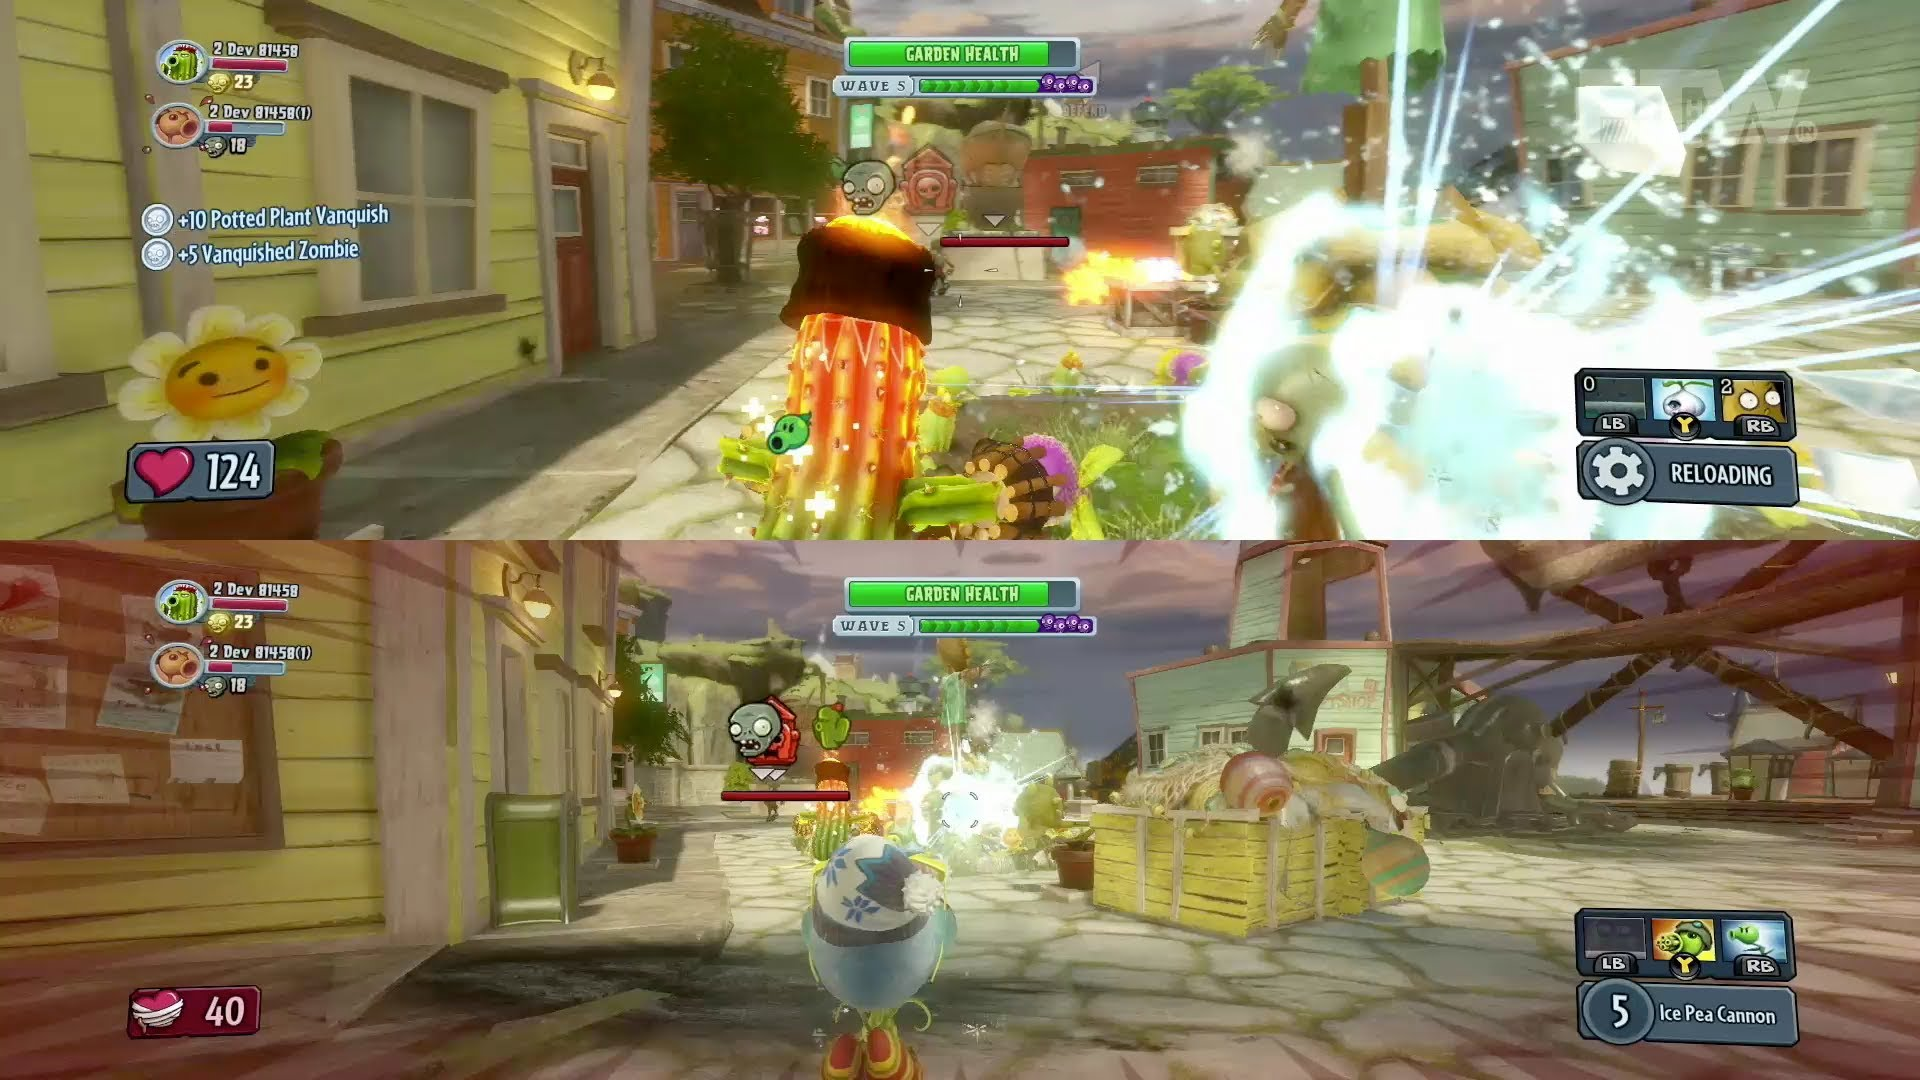 Plants vs zombies garden warfare 2 xbox one review stg - Plants vs zombies garden warfare xbox one ...